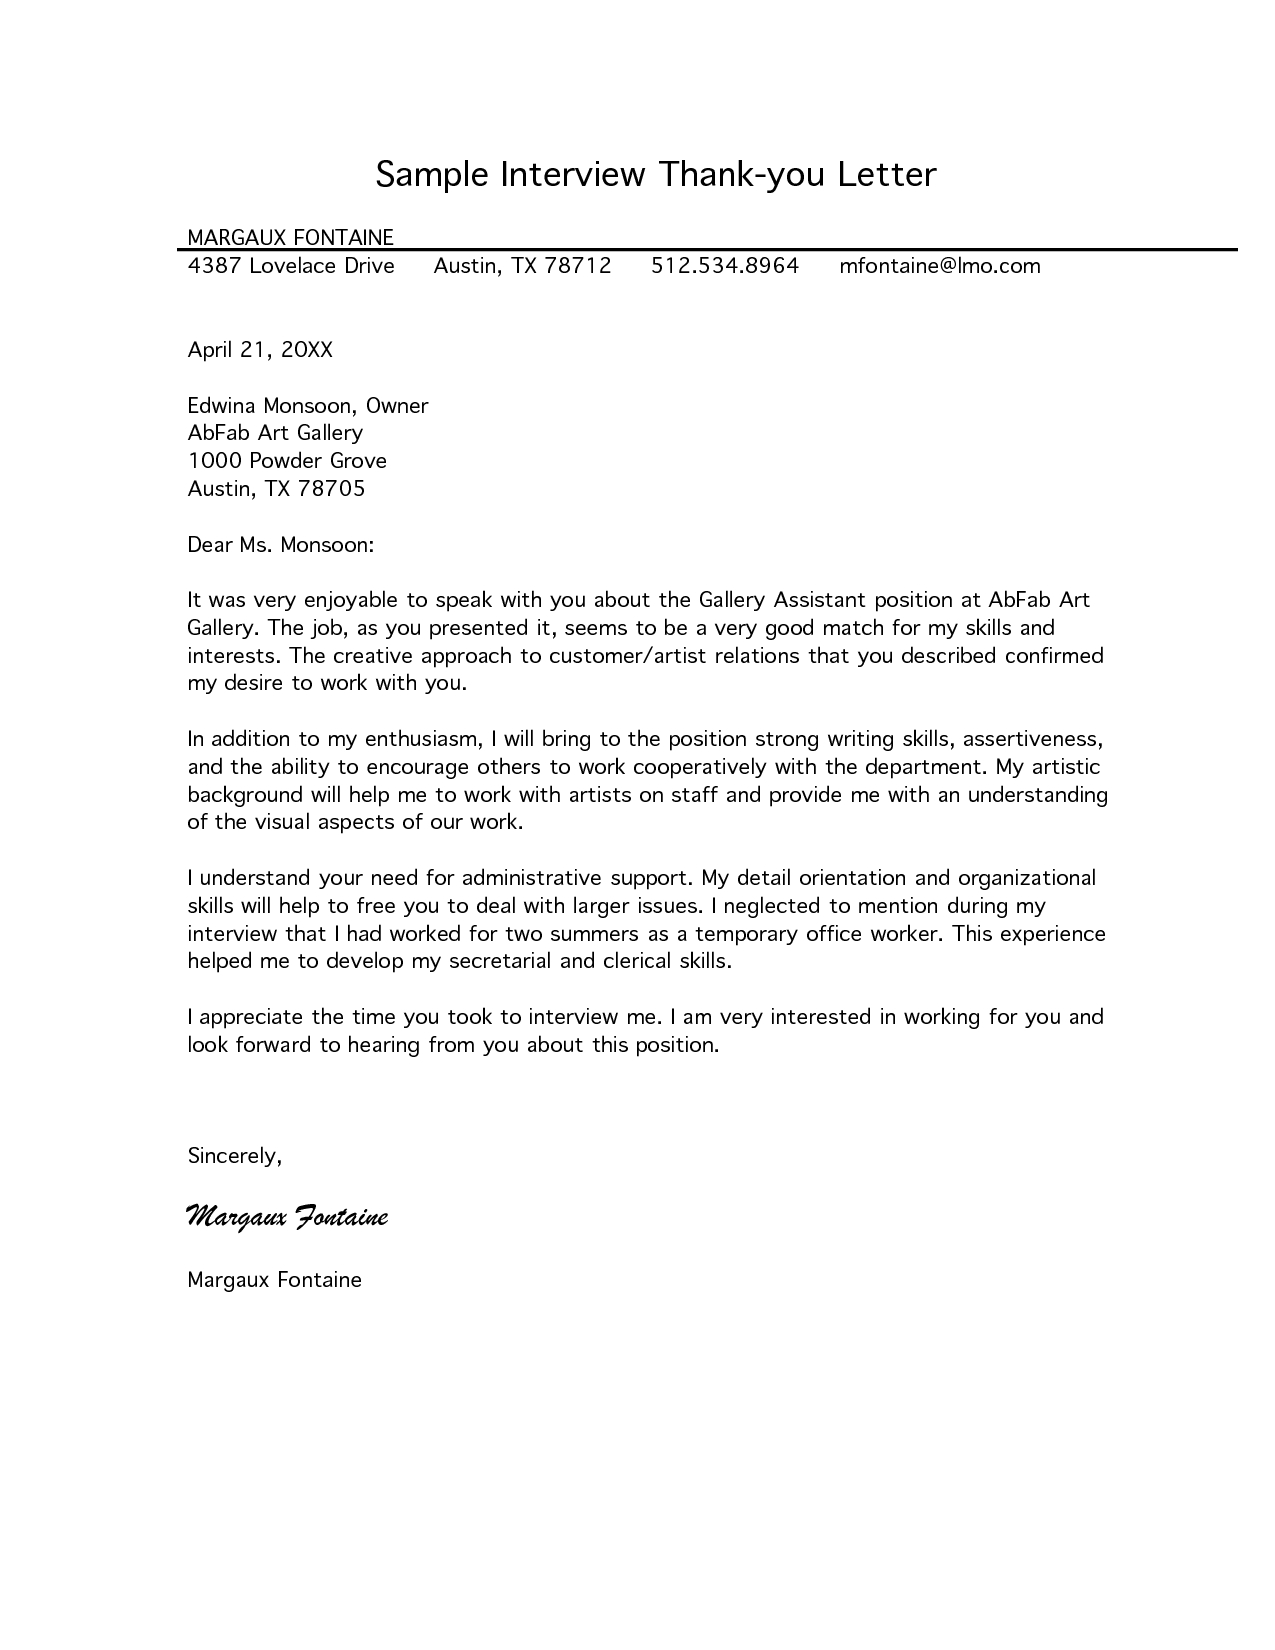 Interview Thank You Letter Template - Free Letter Of Interest Templates